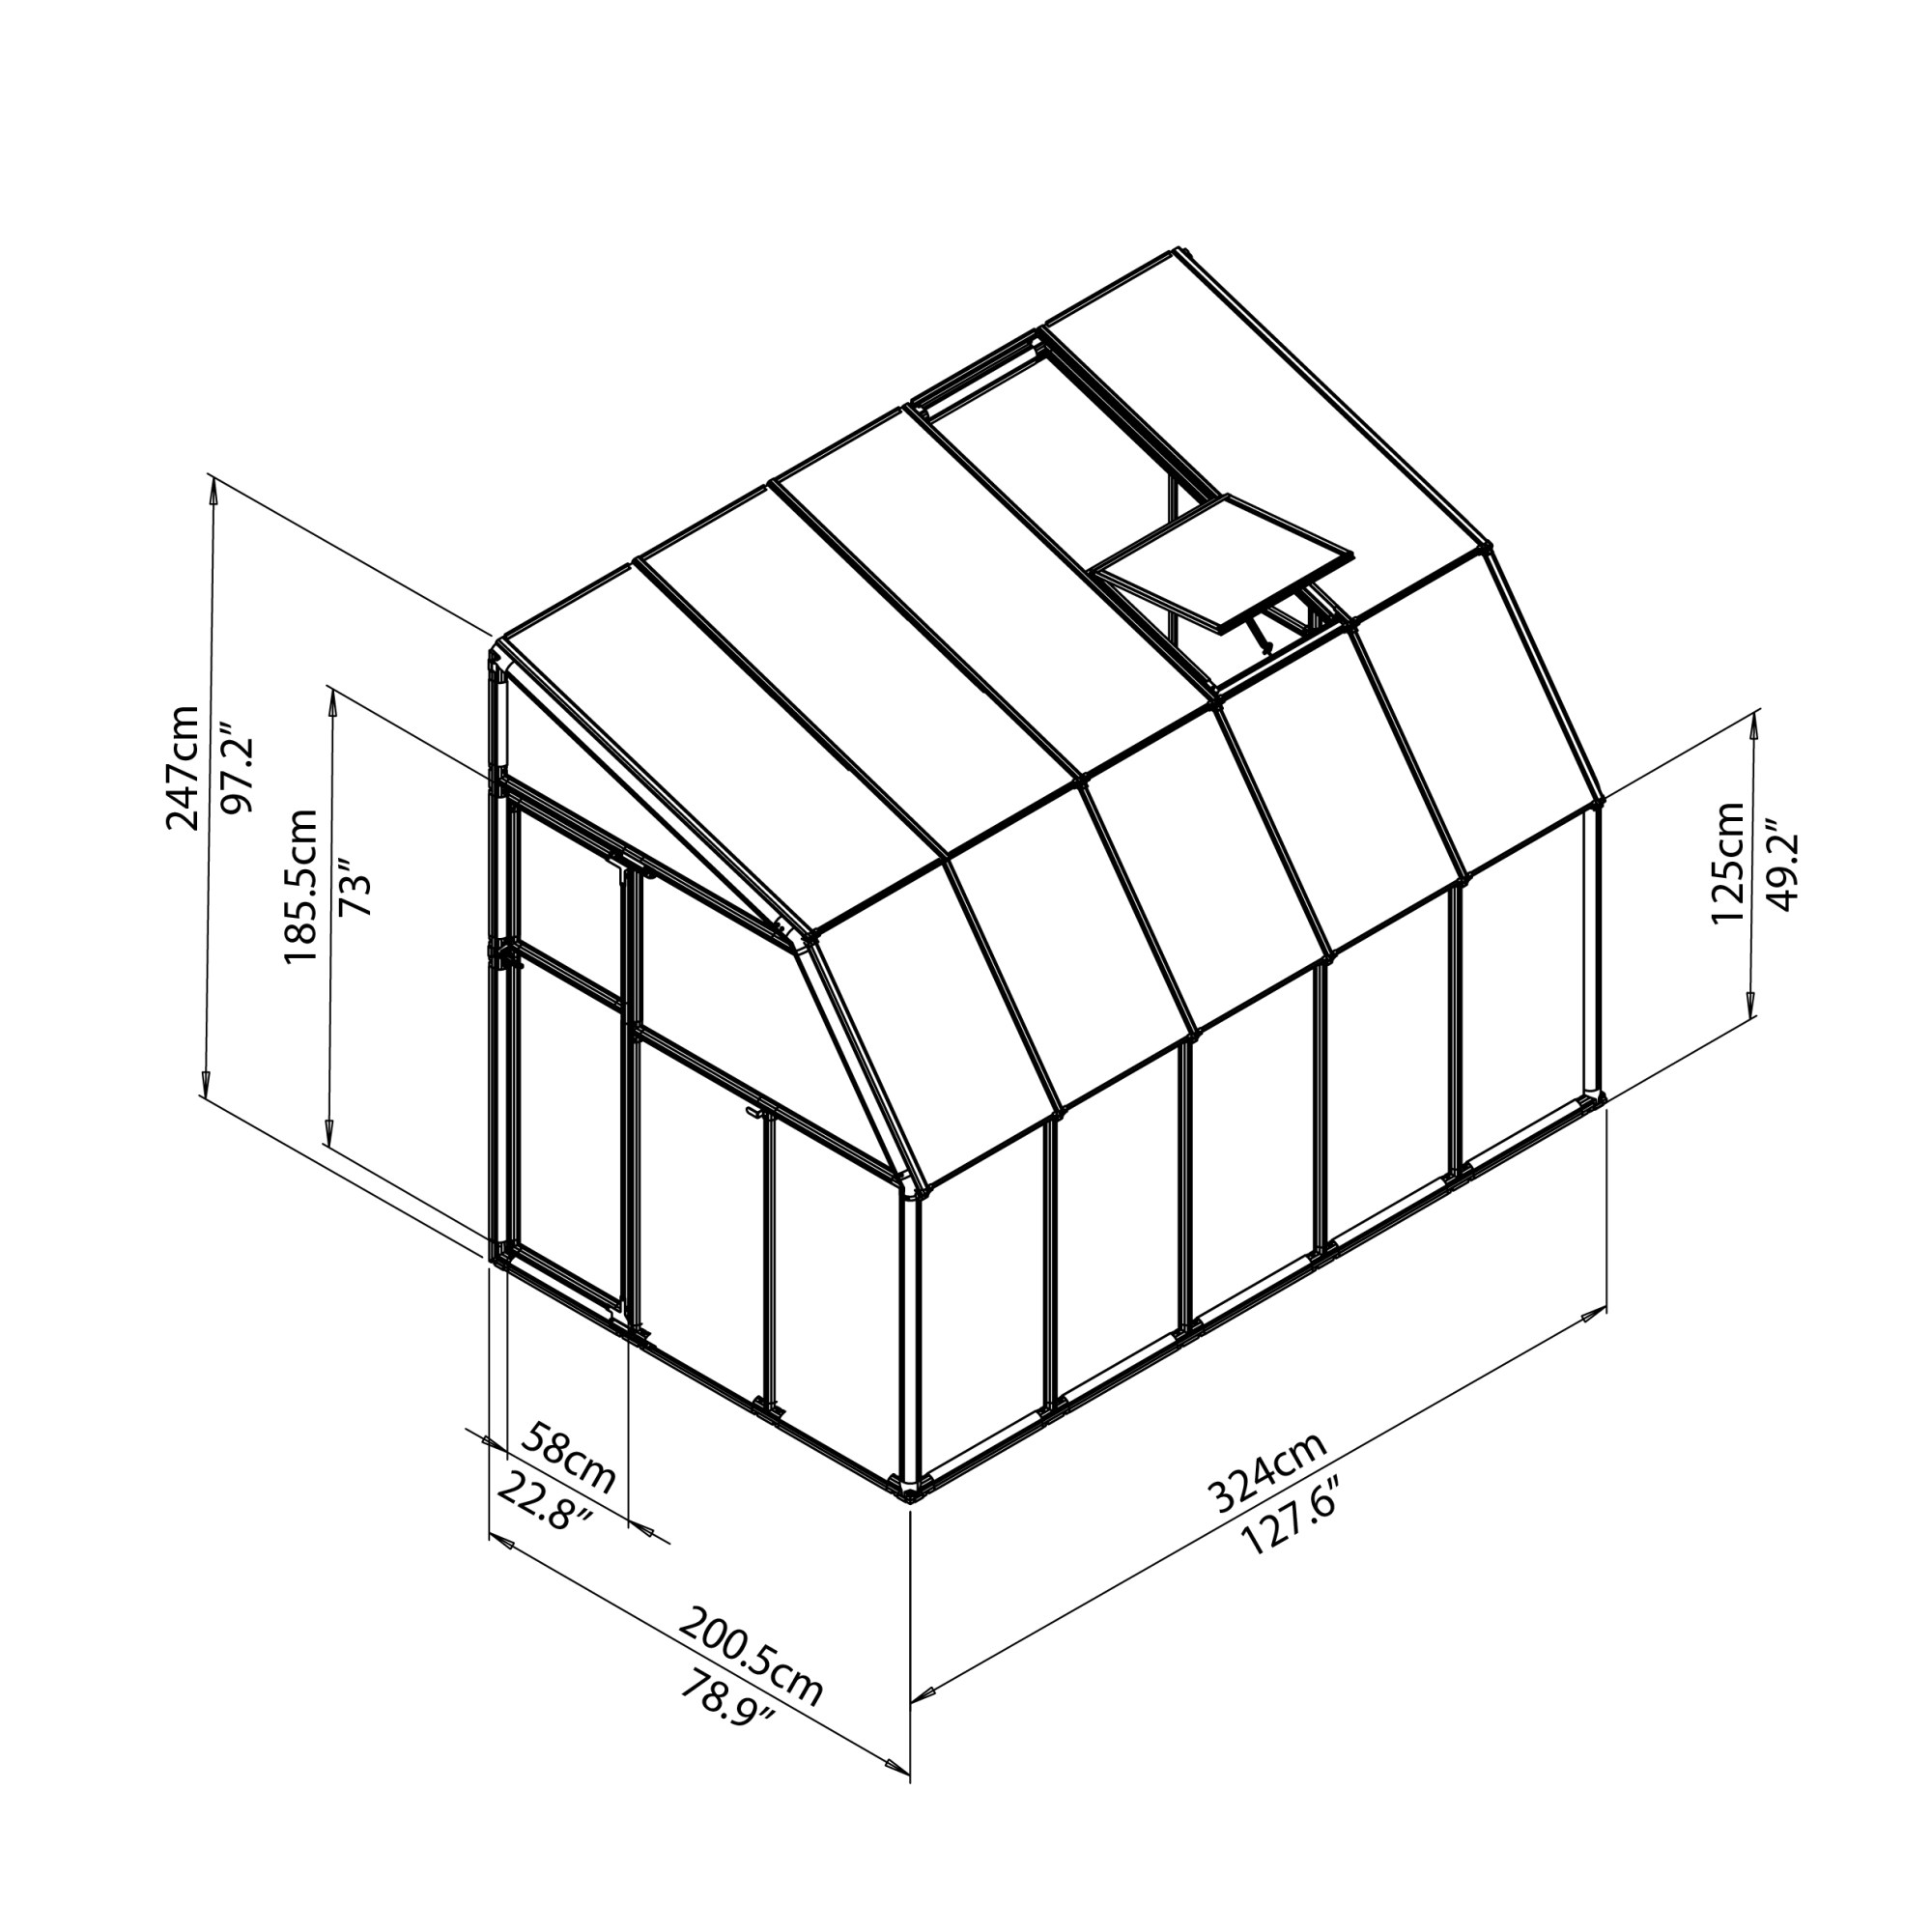 hight resolution of rion greenhouses sunroom 6x10 drawing isoview jpg